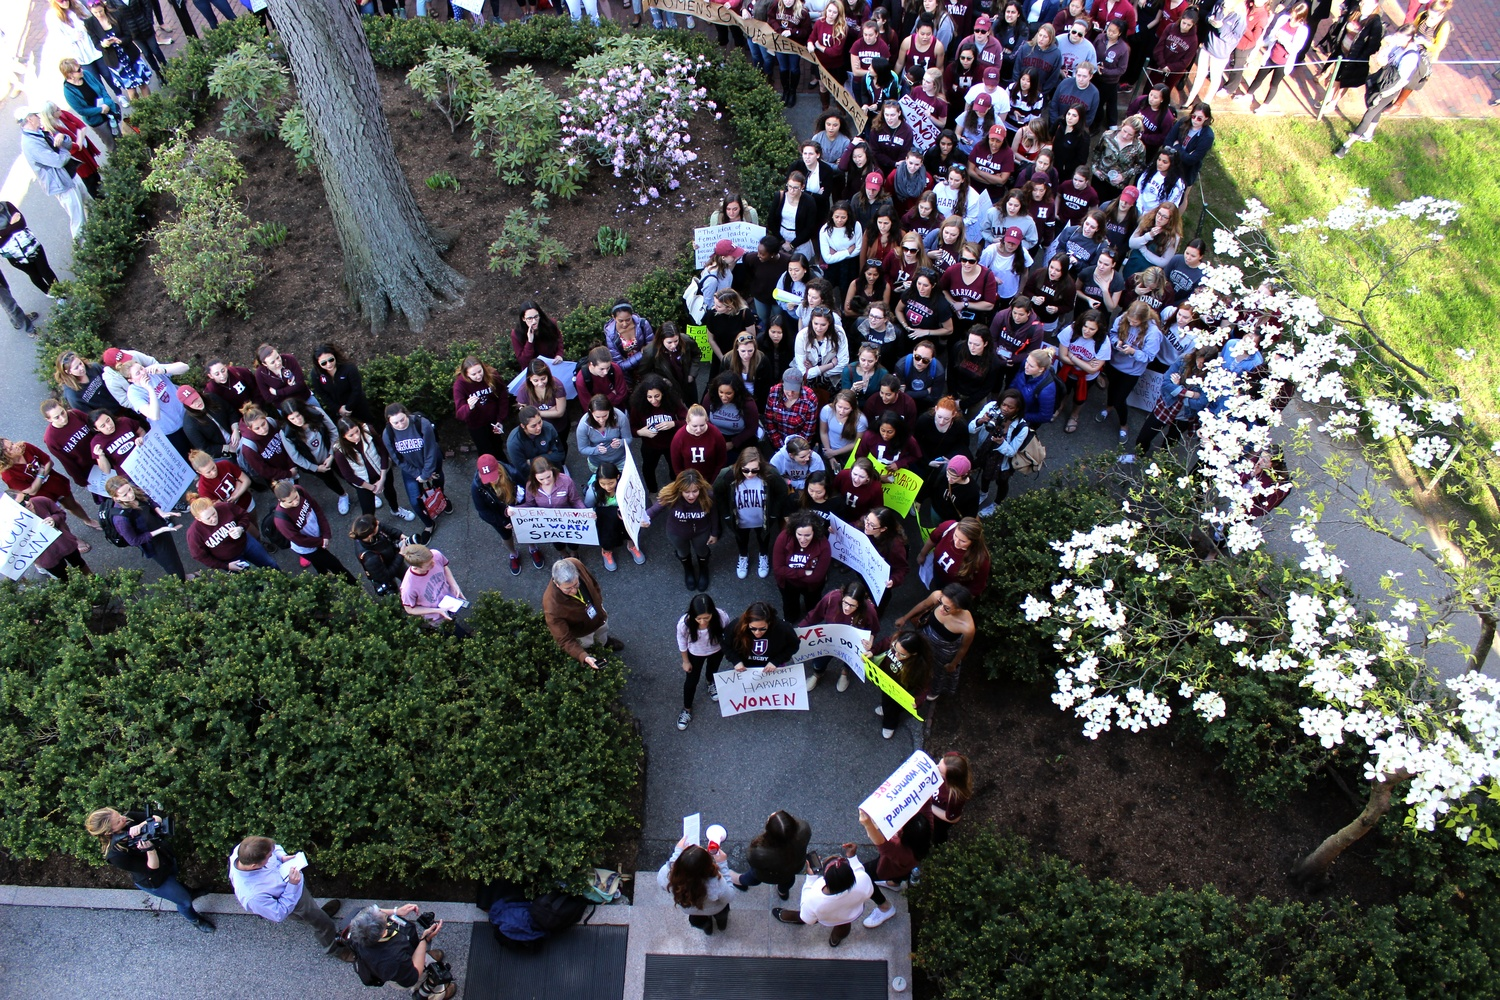 Days after the sanctions' debut in 2016, scores of sorority and female final club members protested outside the president's office. Two years and three months later, every one of Harvard's all-female groups has agreed to go co-ed.